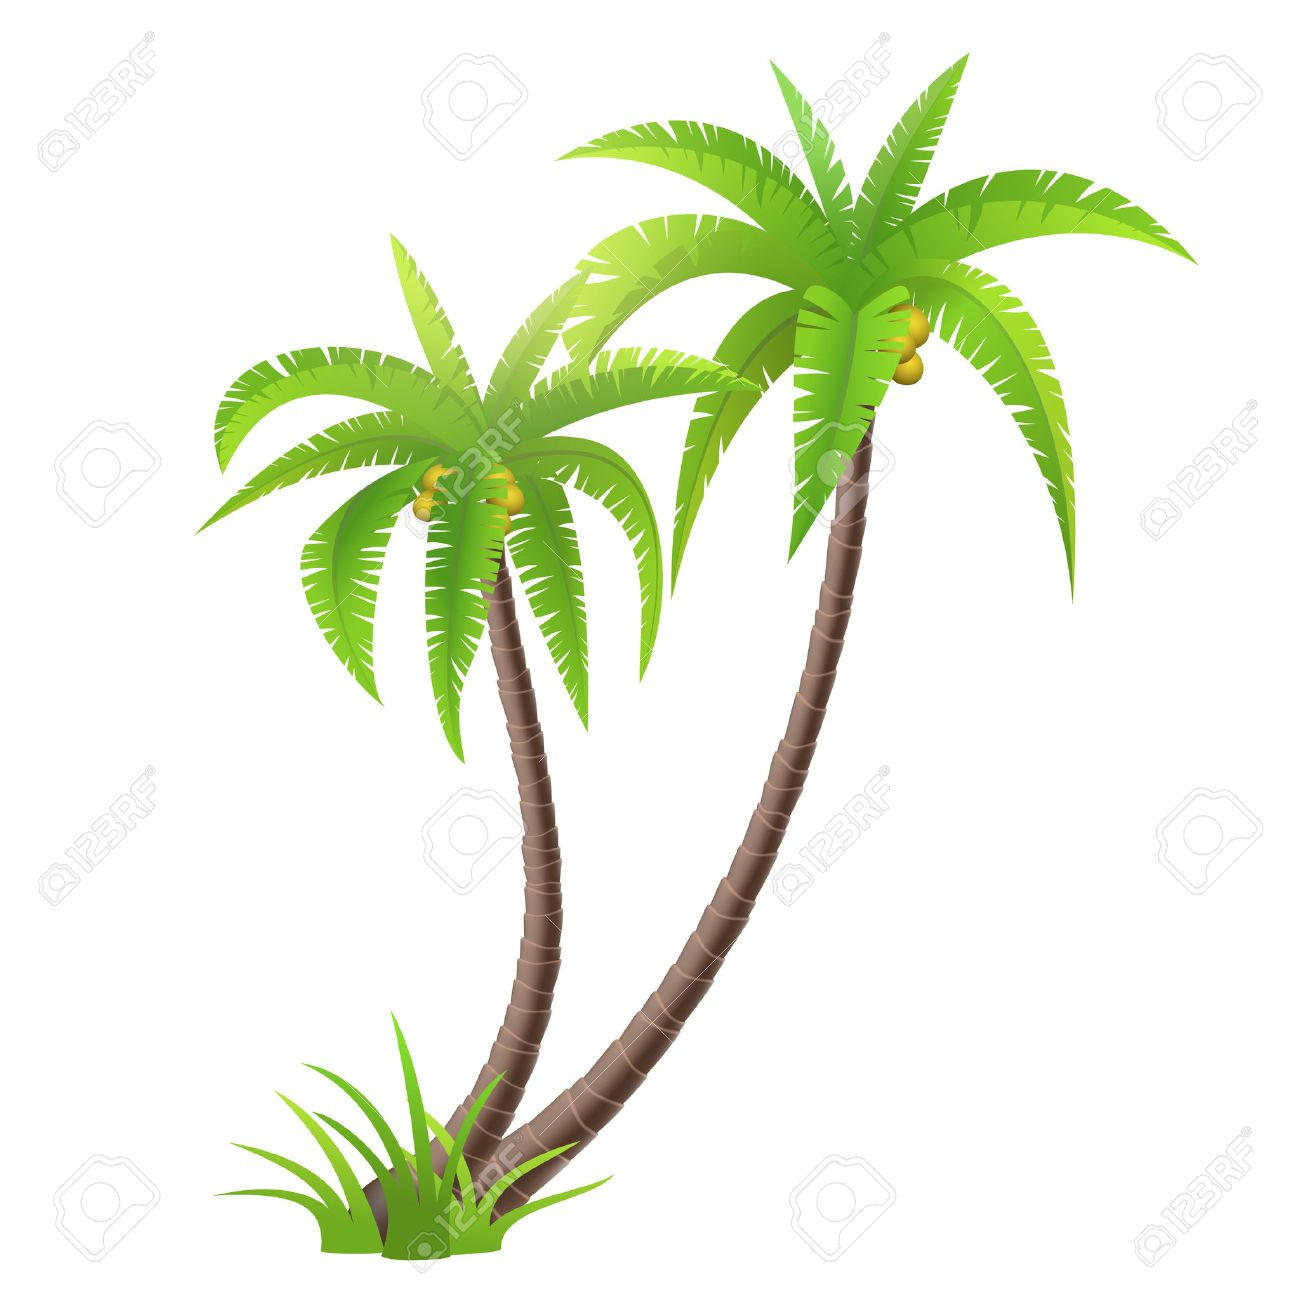 Coconut palm trees isolated on white, vector illustration - 42098283